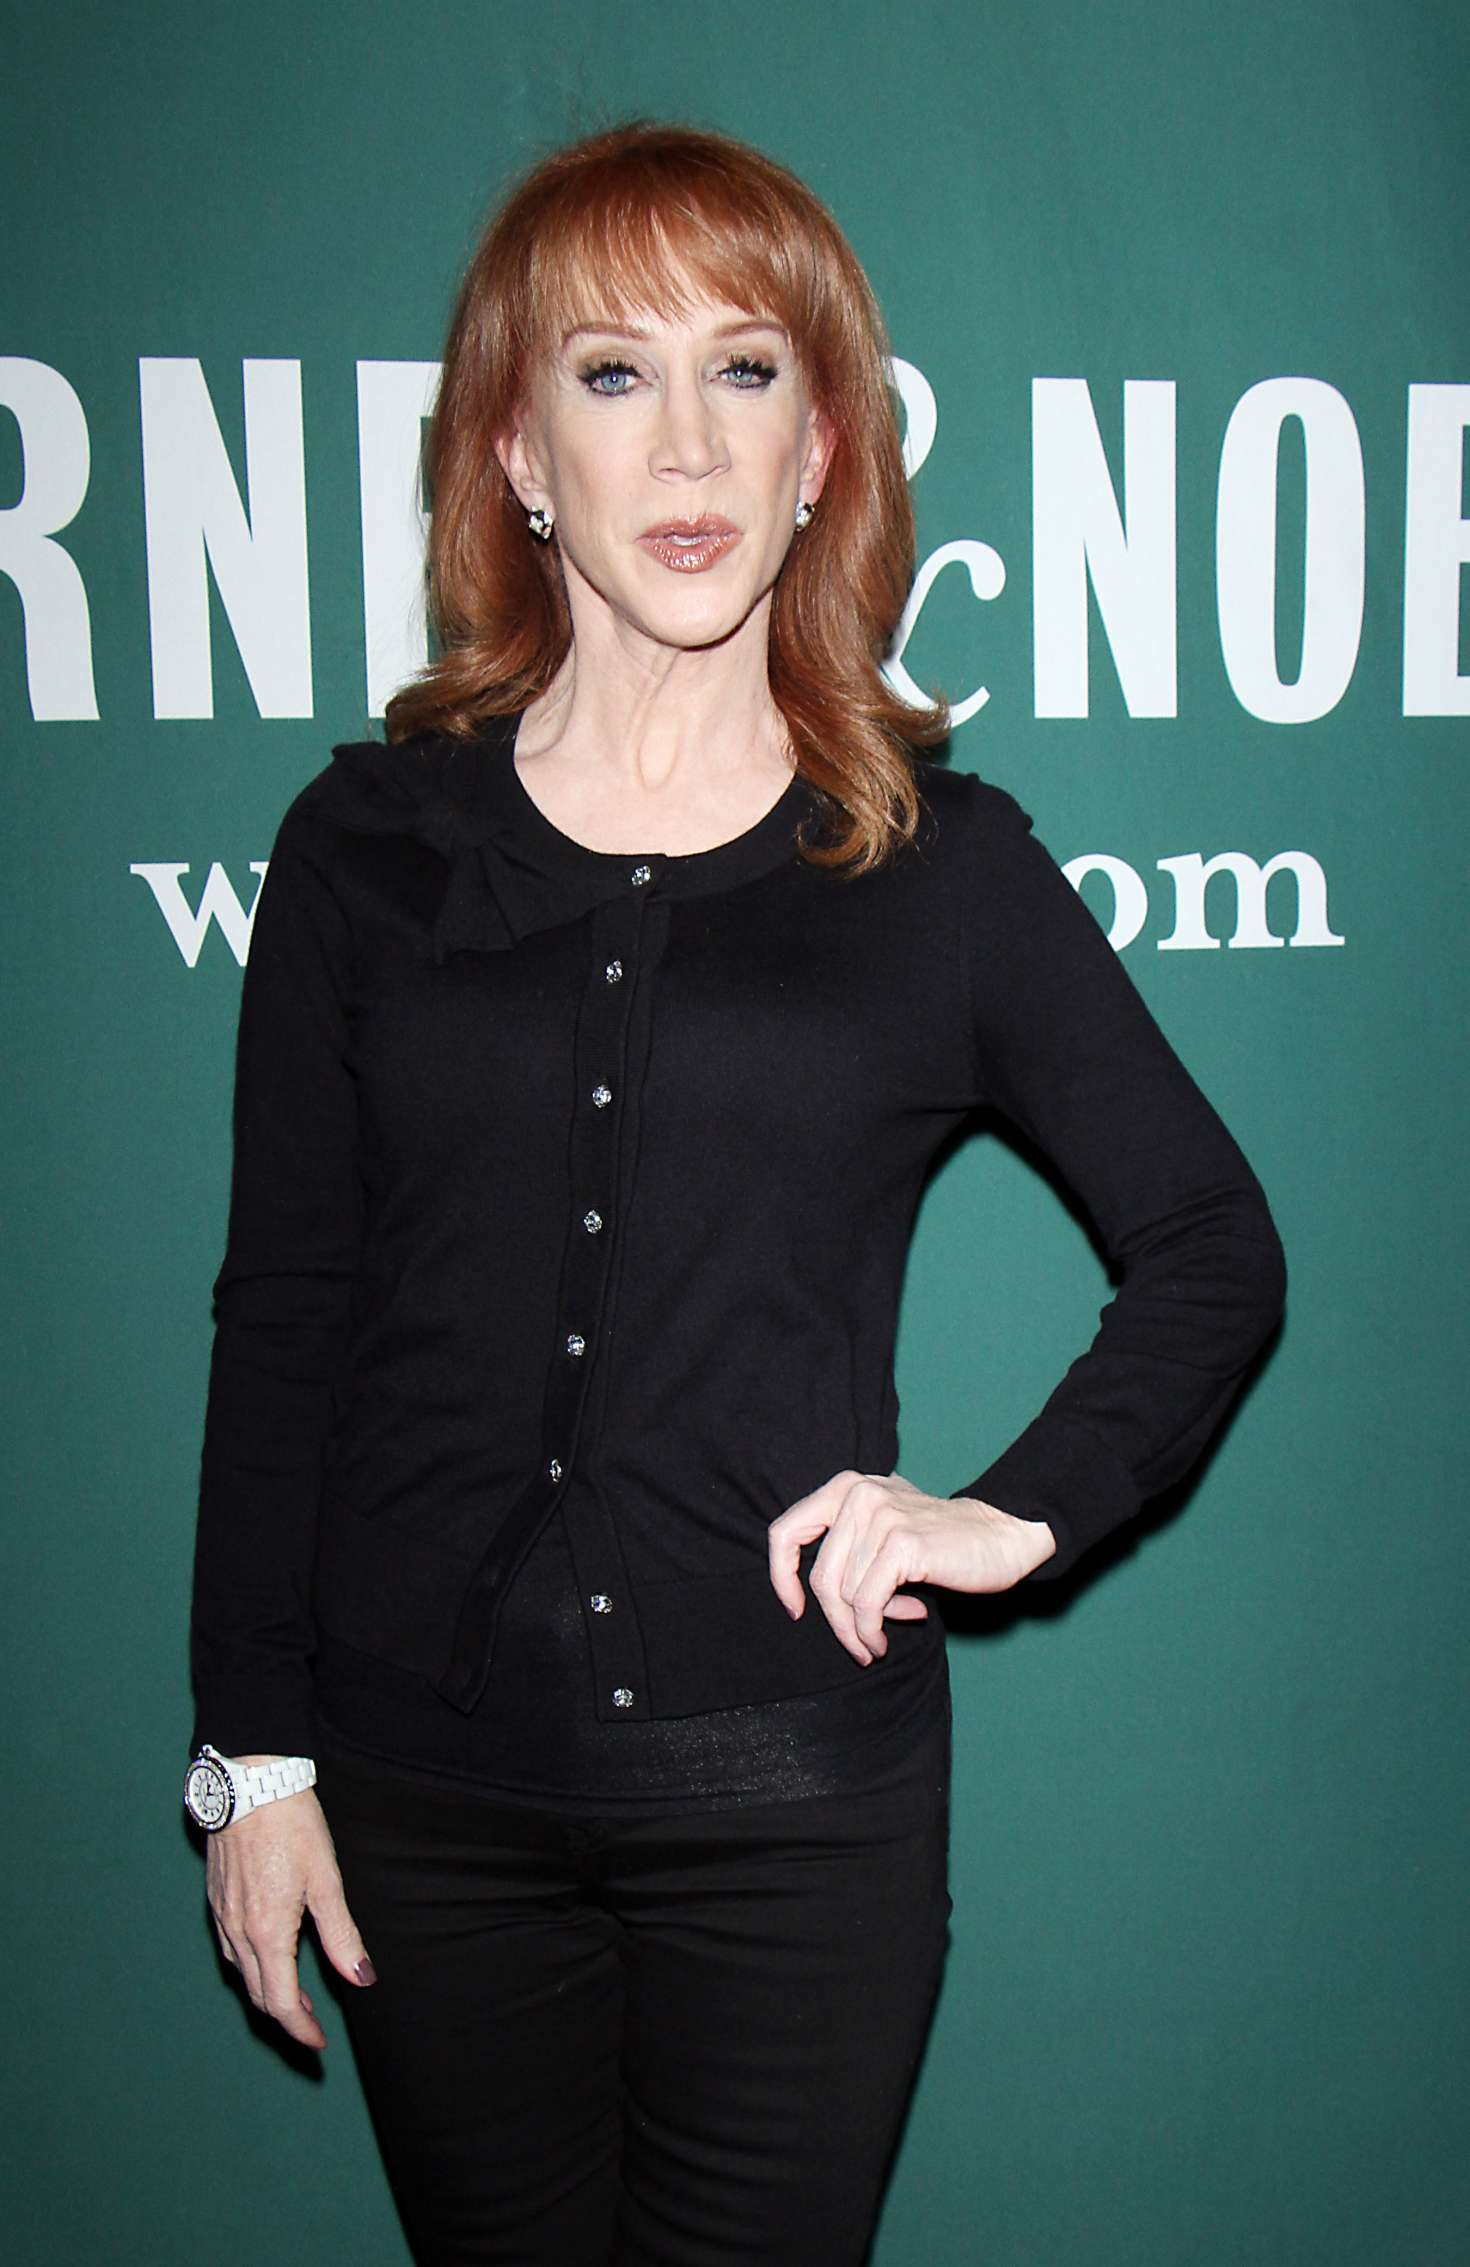 Kathy Griffin - Kathy Griffin's Celebrity Run-In's Book Signing in New York